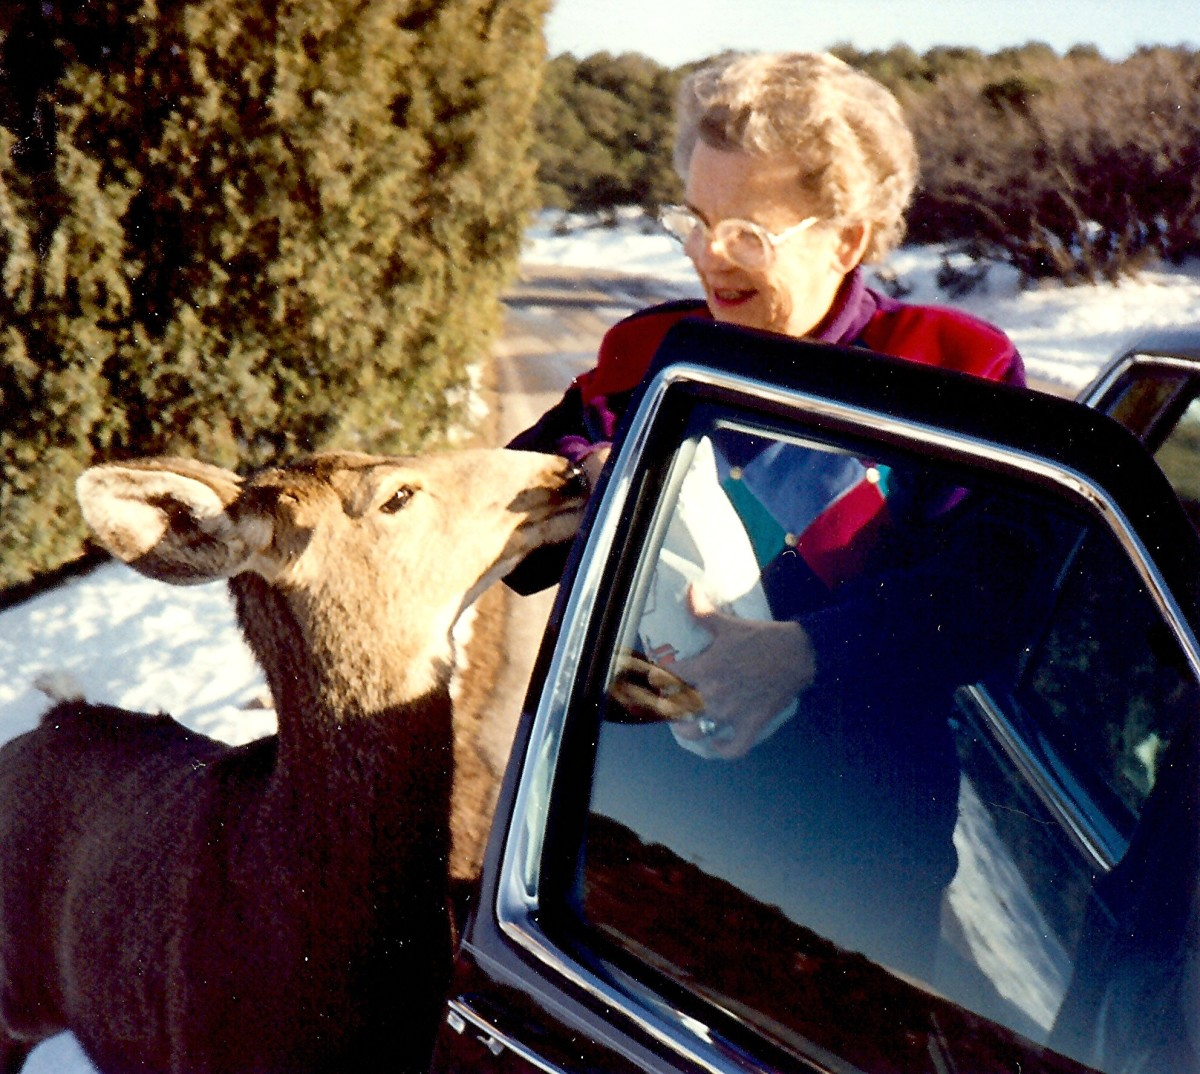 My mother hand feeding a deer